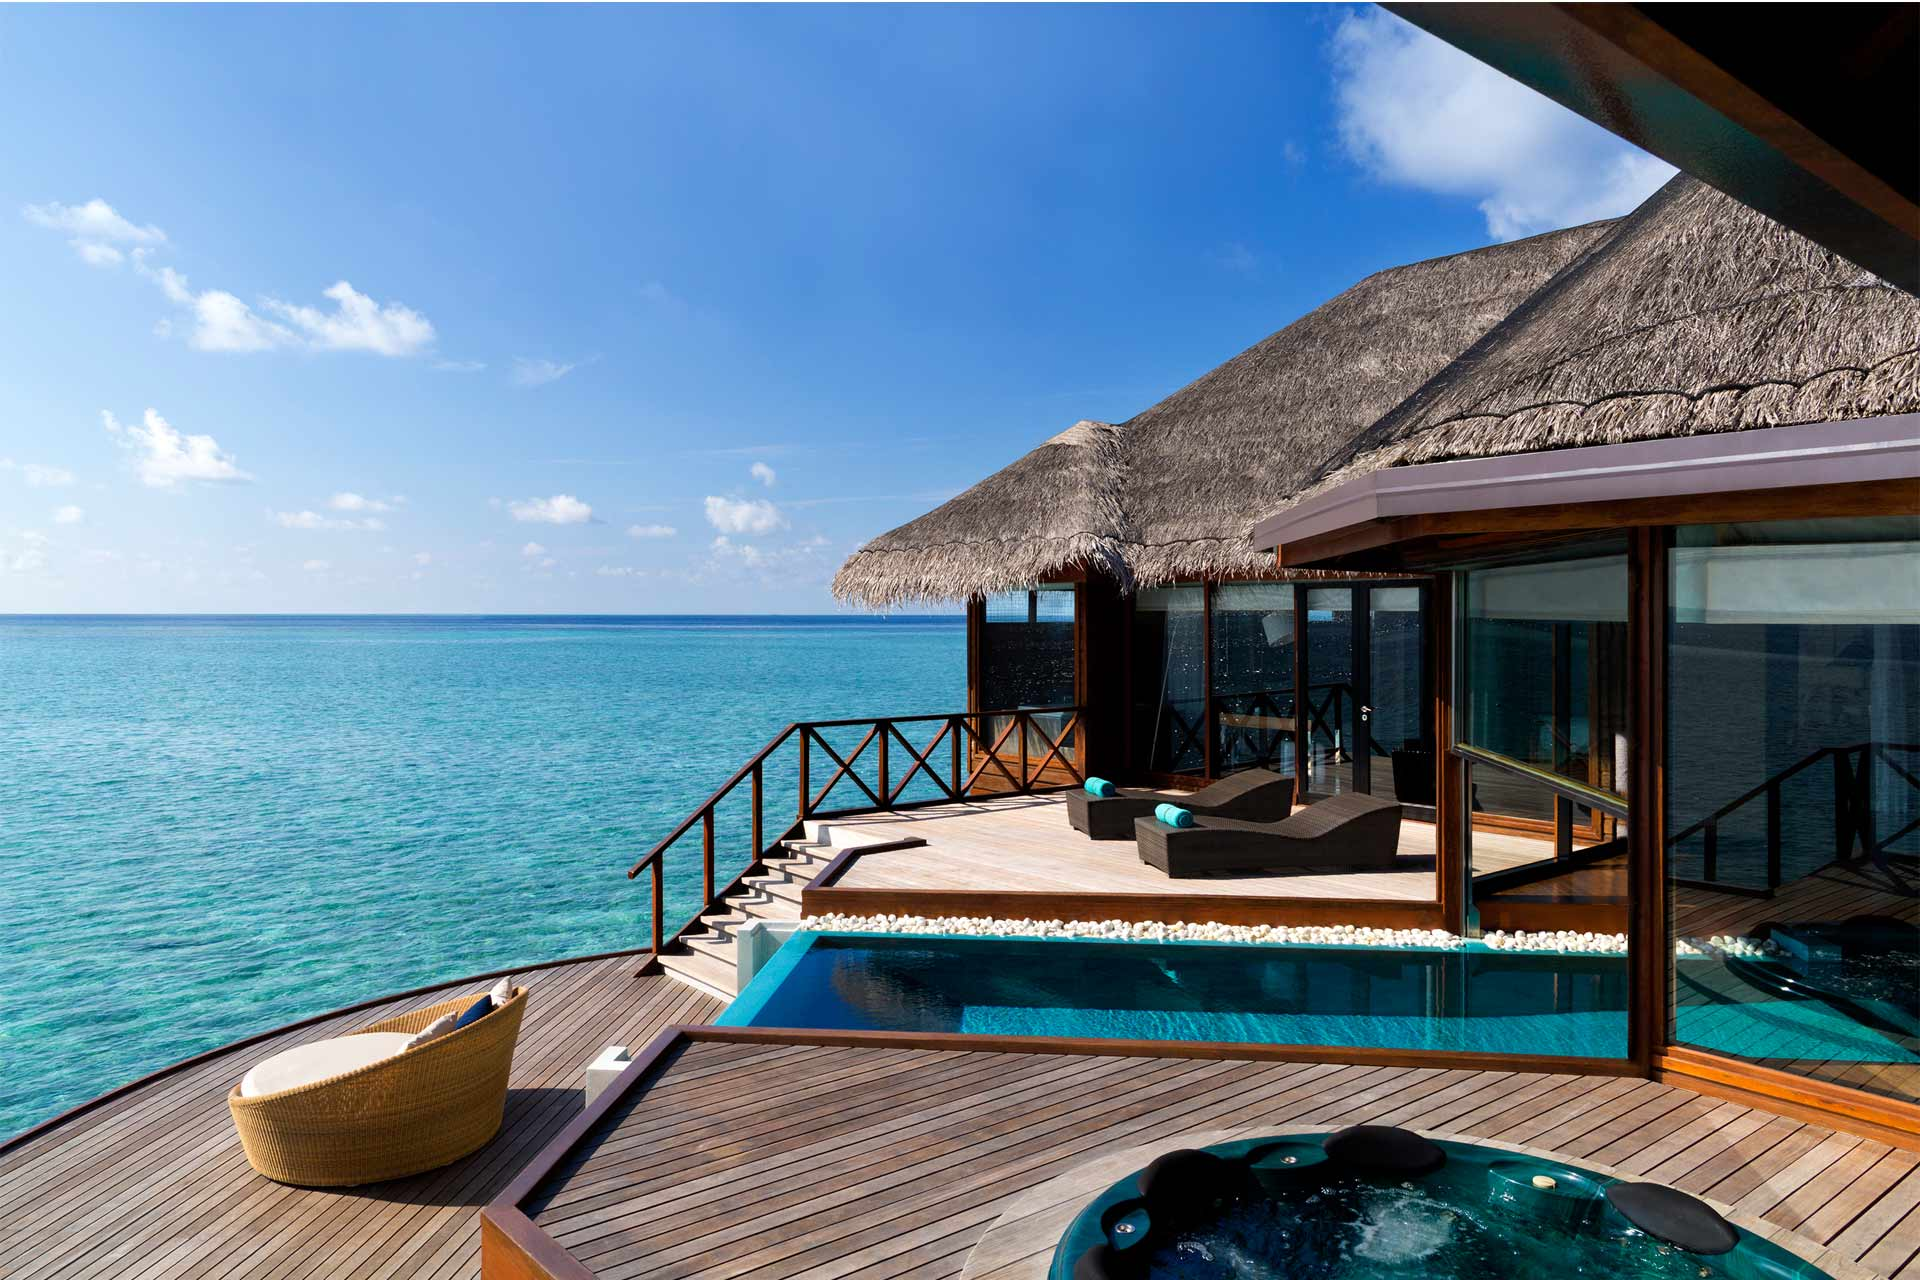 Maldives luxury travel resorts